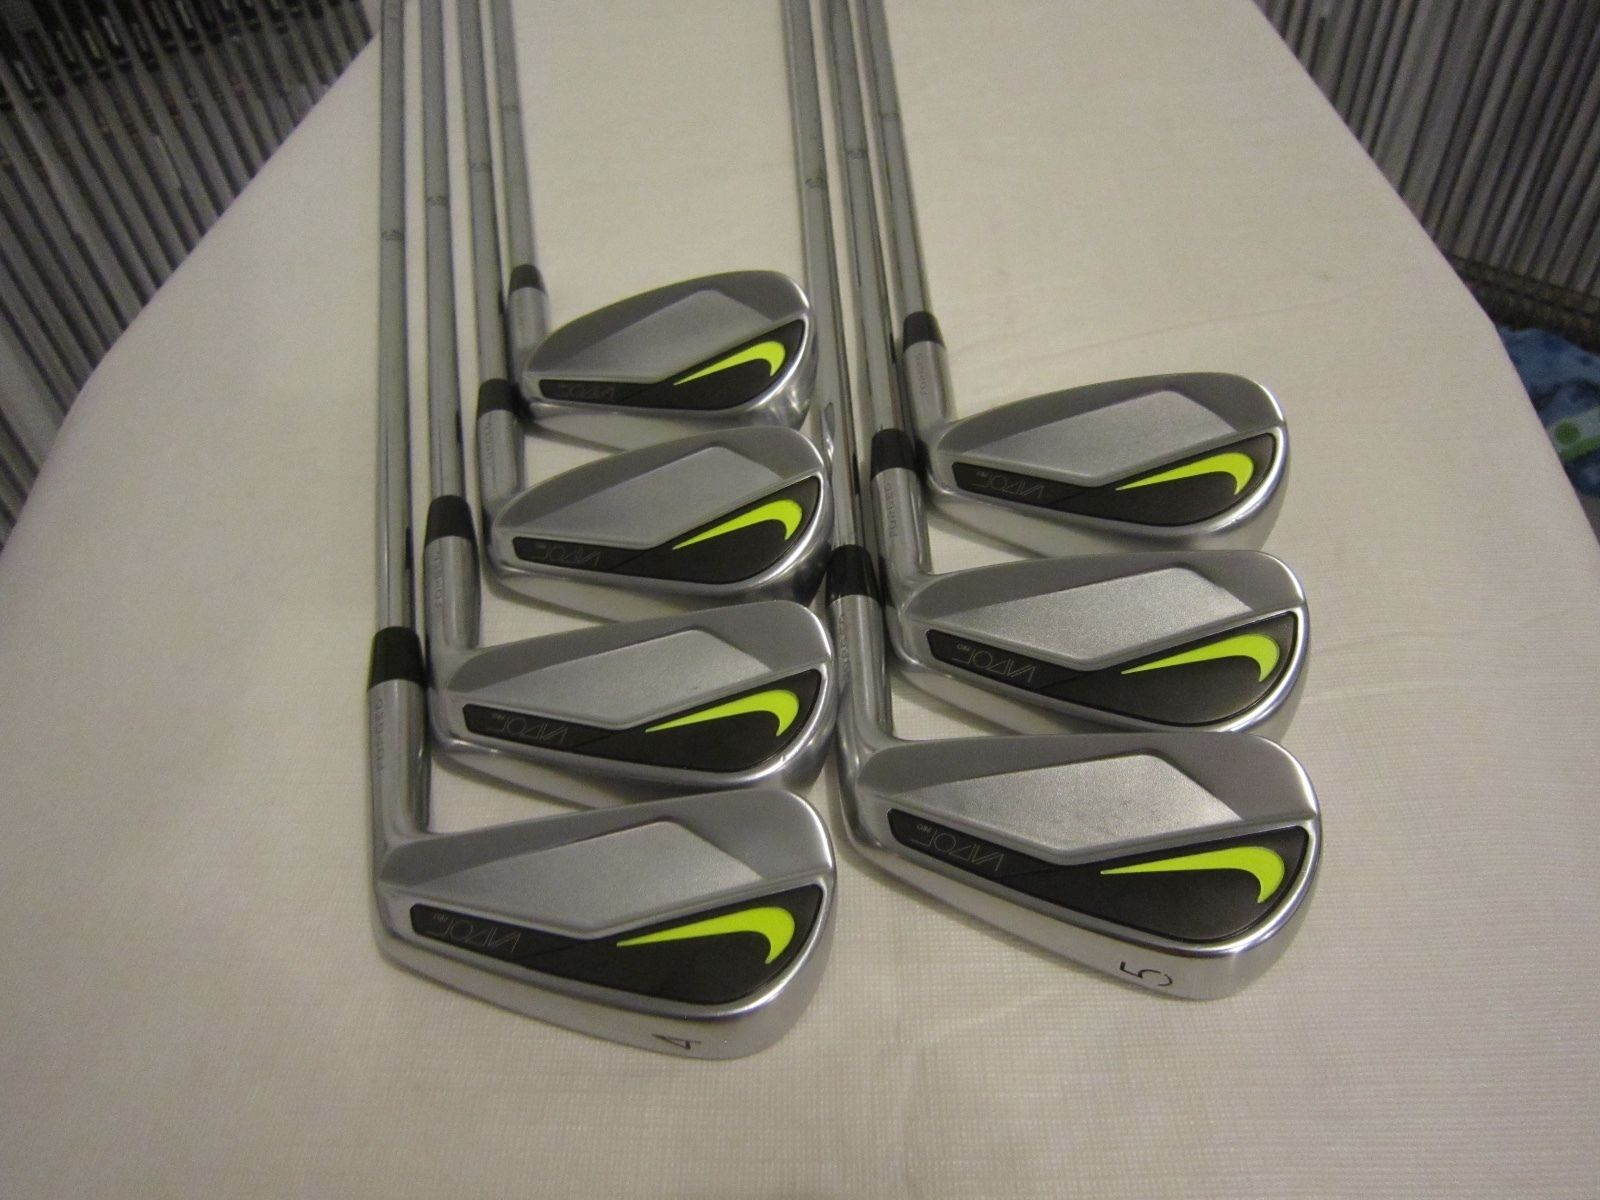 Nike Vapor Pro Iron Set - 4-PW - Dynamic Gold S300 Stiff Flex Steel ... 75b7bdfb5